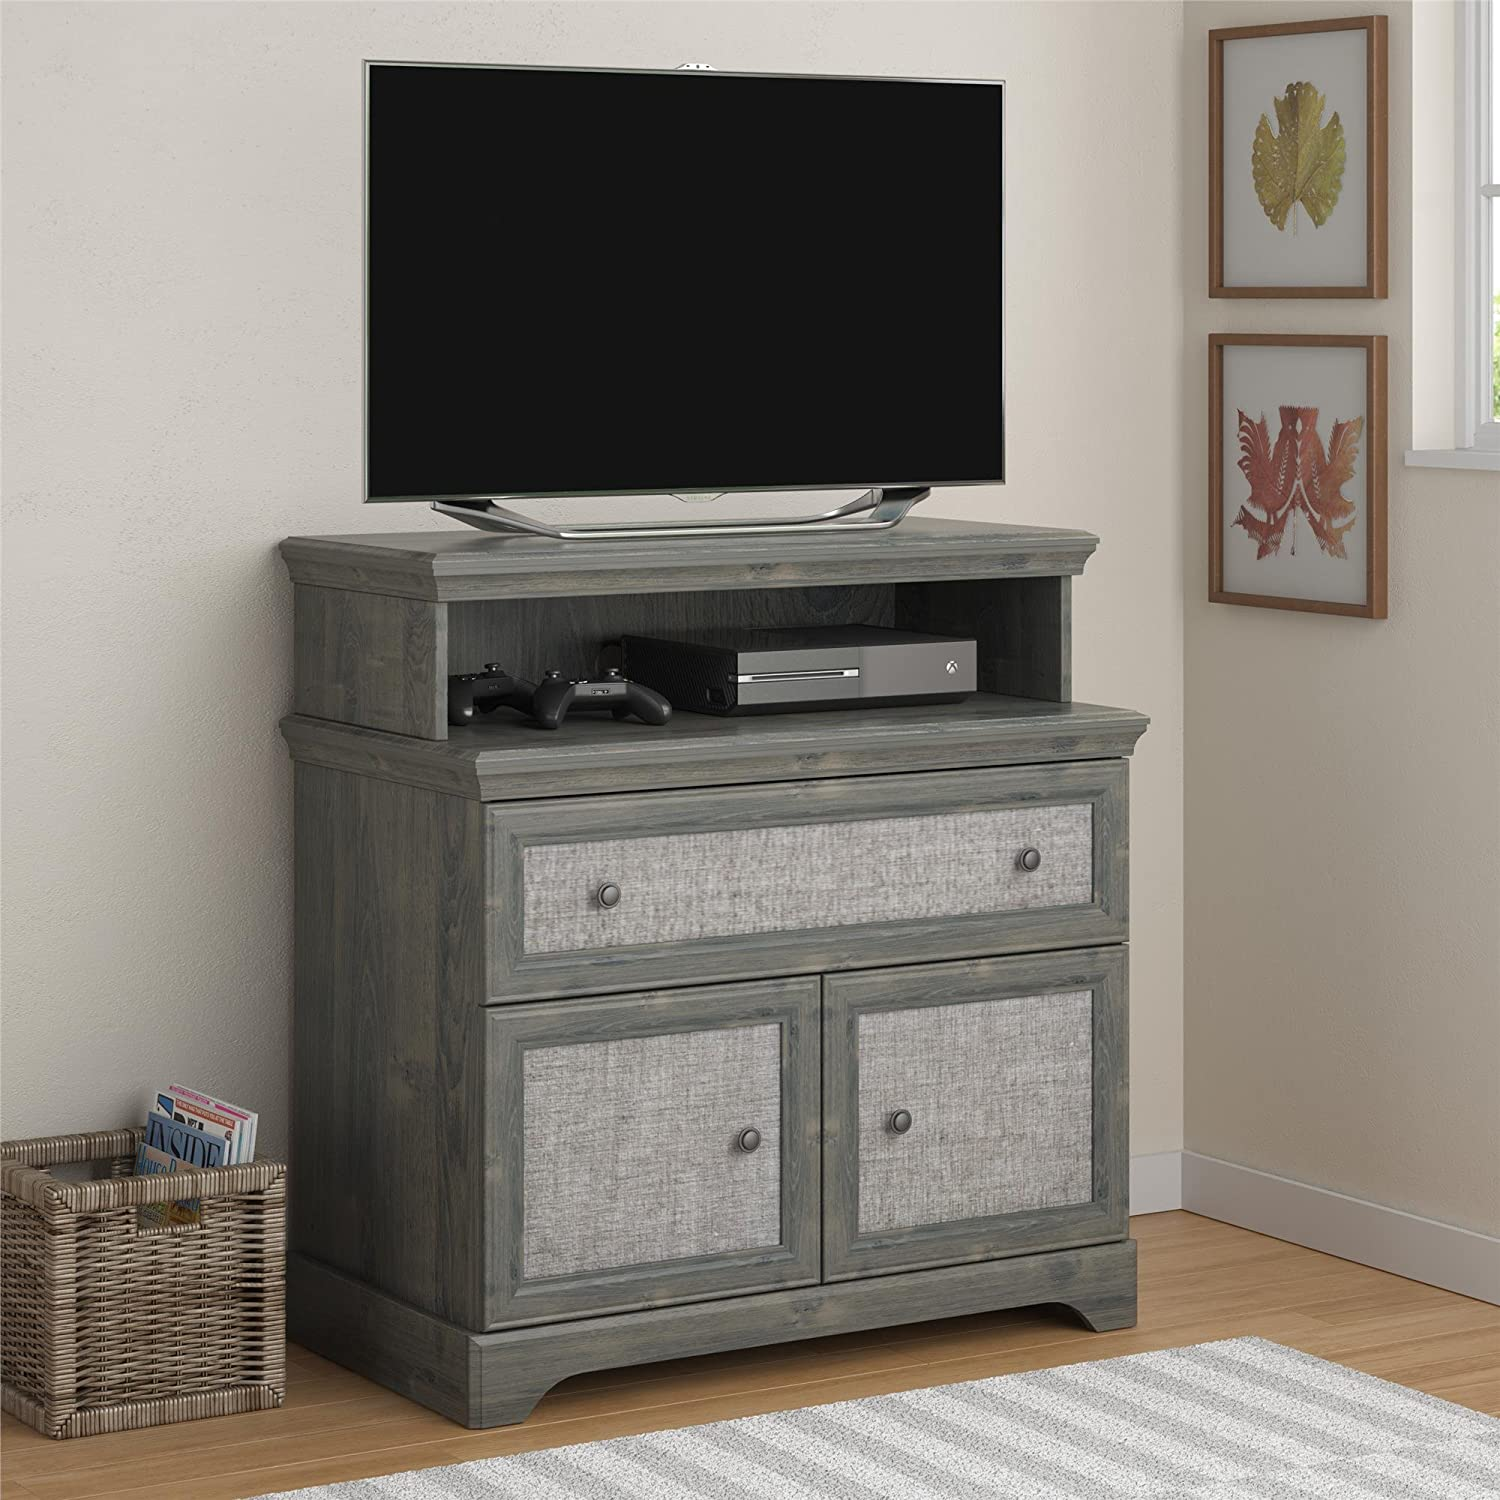 Altra Furniture 5937213COM Stone River Media Dresser with Fabric Inserts, Rodeo Oak Dorel Home Furnishings